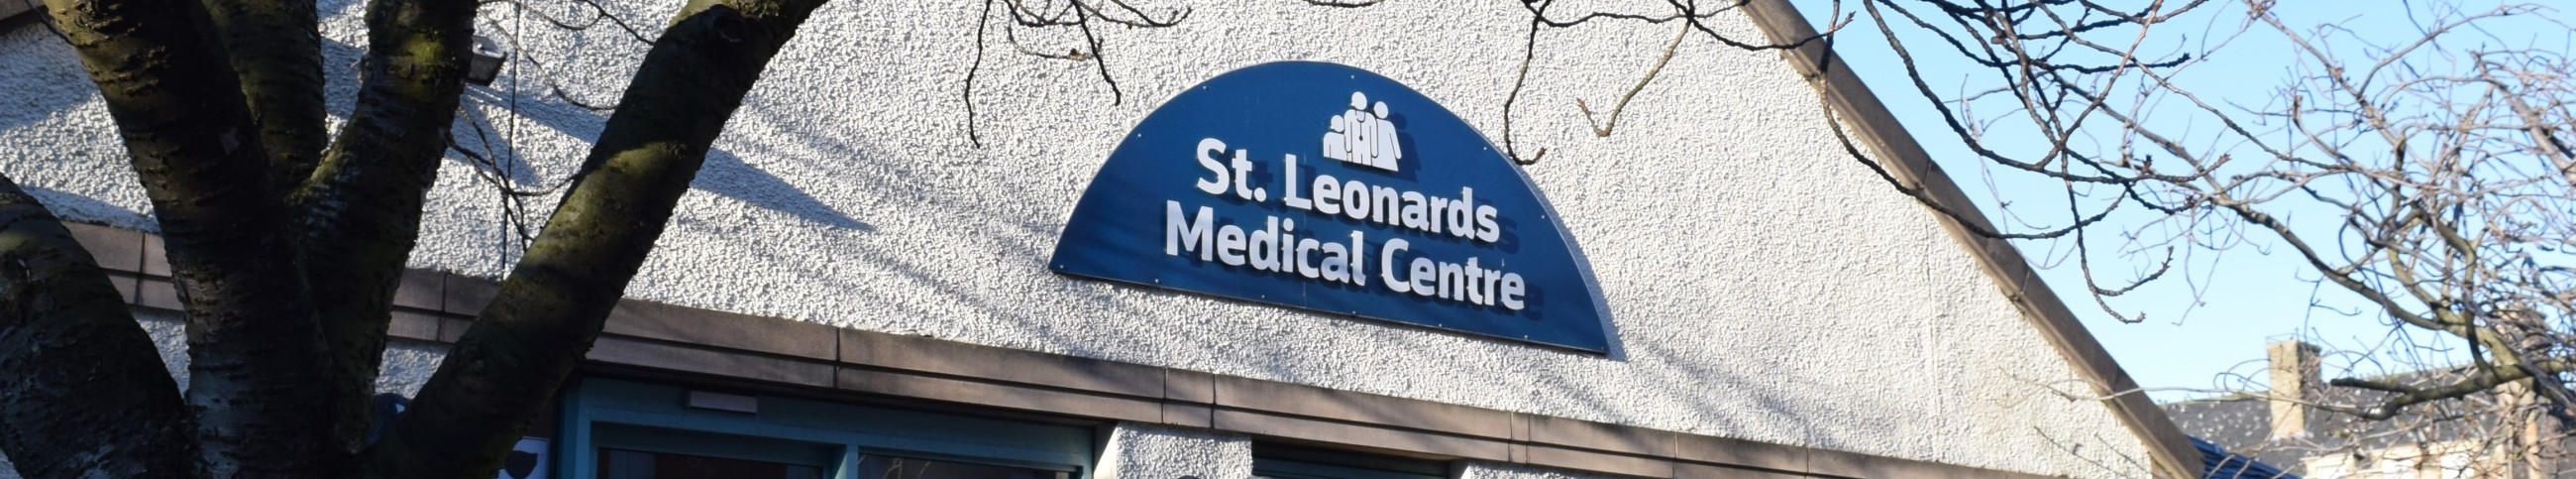 St. Leonards Medical Practice